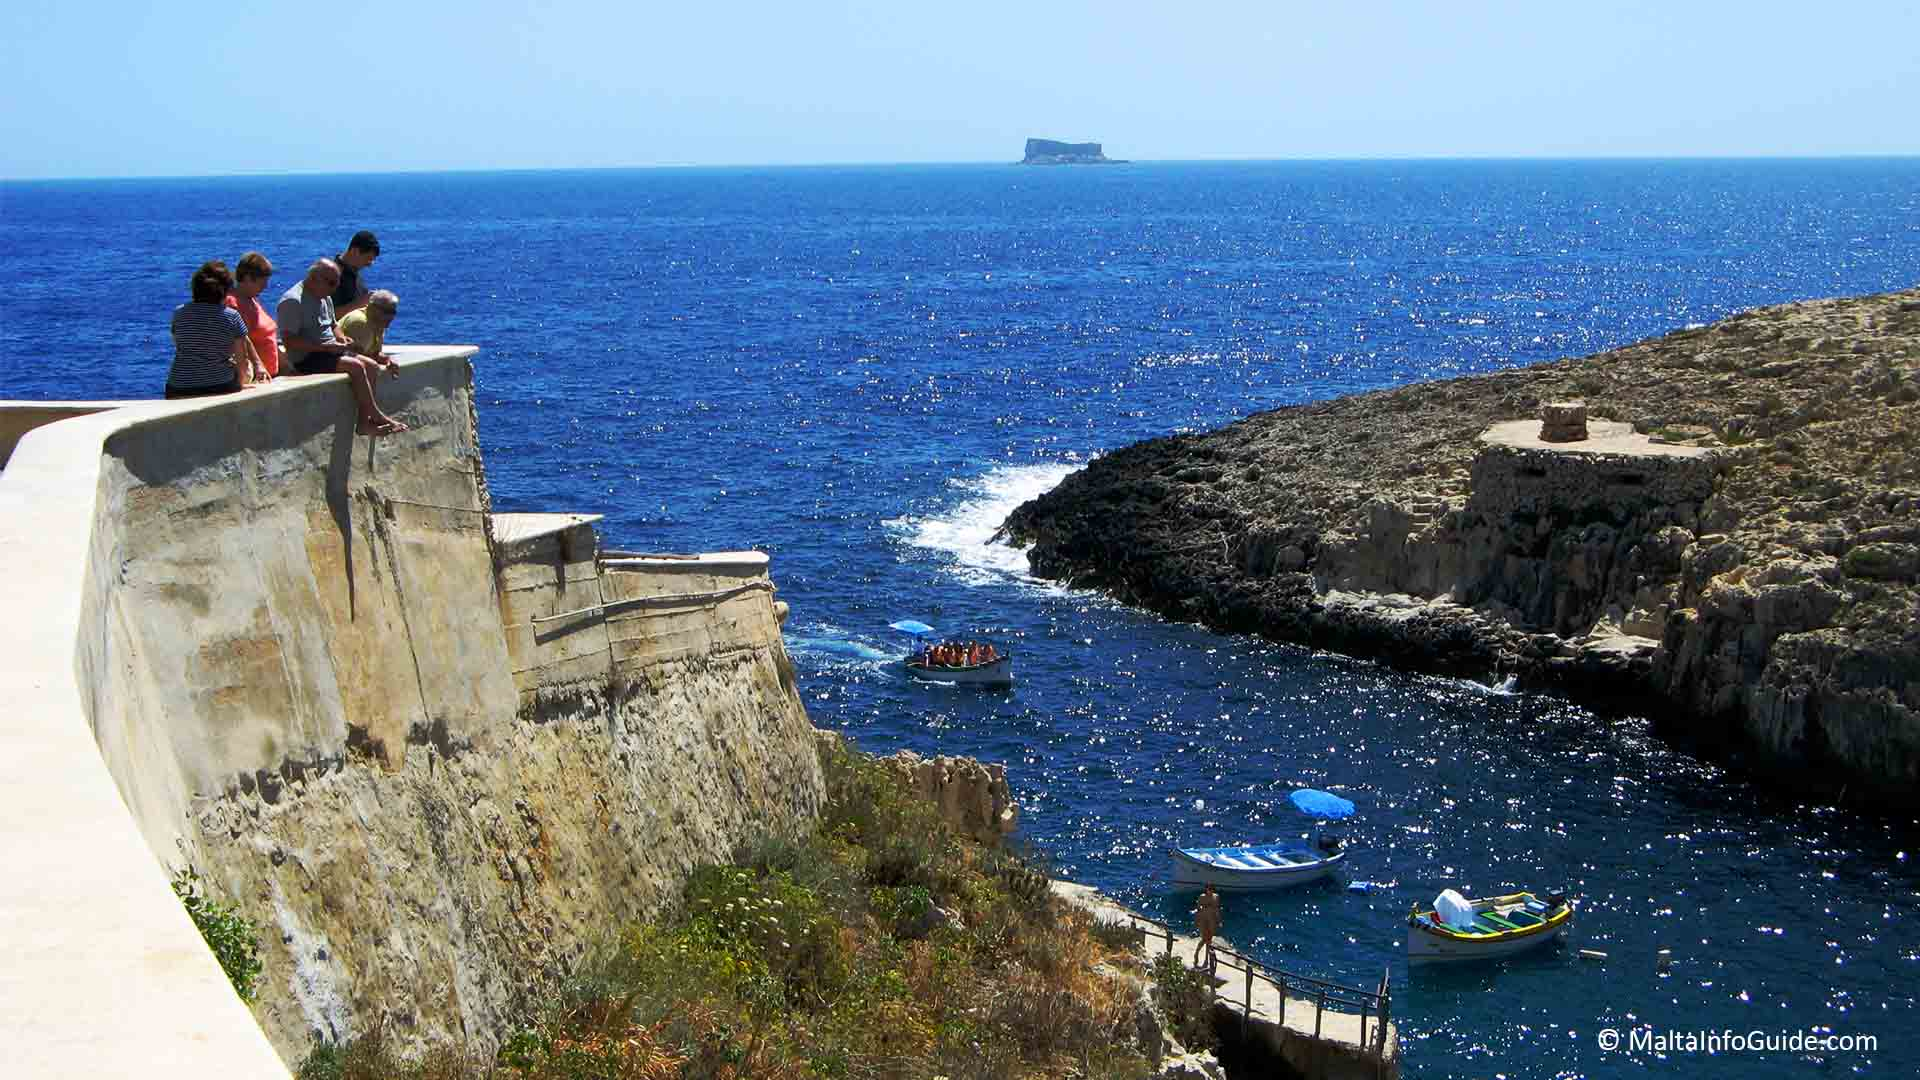 Wied iz-Zurrieq bay entrance with a fantastic view of the small island of Filfla